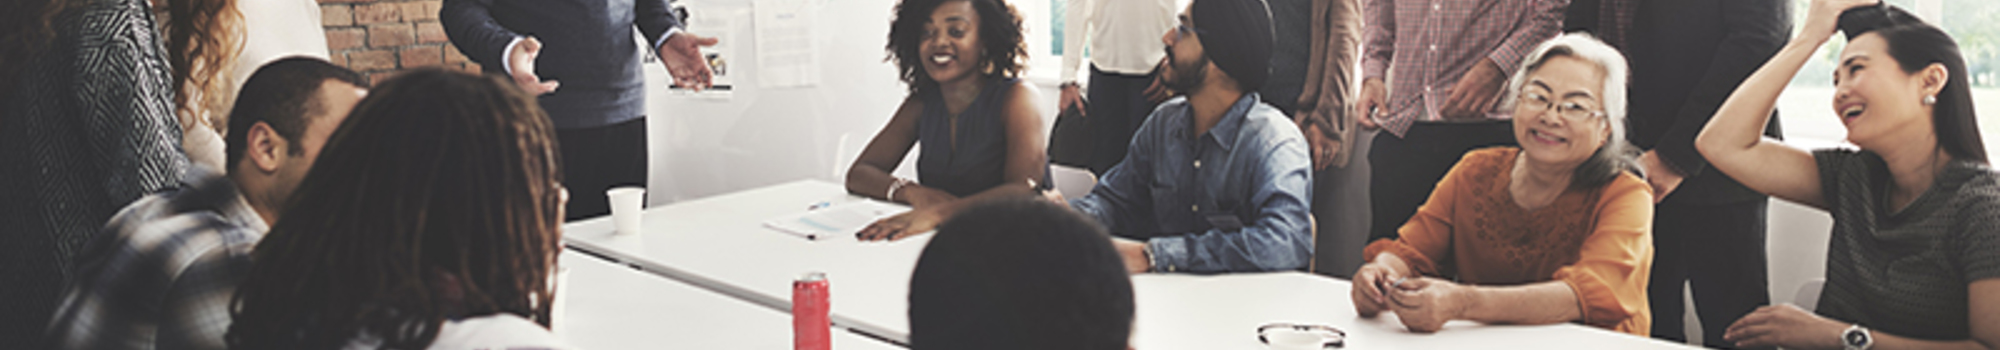 Diversity can drive bottom line performance